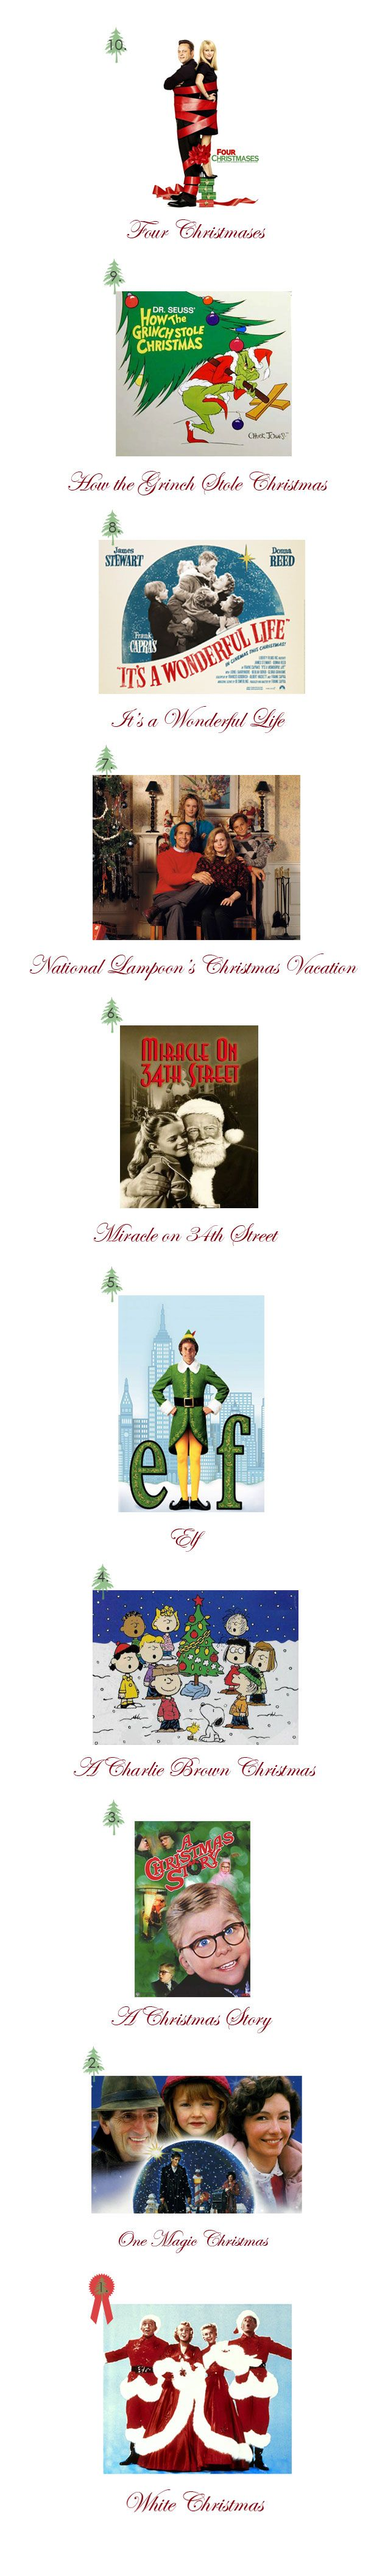 Top 10 Christmas Movies  1. White Christmas 2. One Magic Christmas 3. A Christmas Story 4. A Charlie Brown Christmas 5. Elf 6. Miracle on 34th Street 7. National Lampoon's Christmas Vacation 8. It's a Wonderful Life 9. How the Grinch Stole Christmas 10. Four Christmases